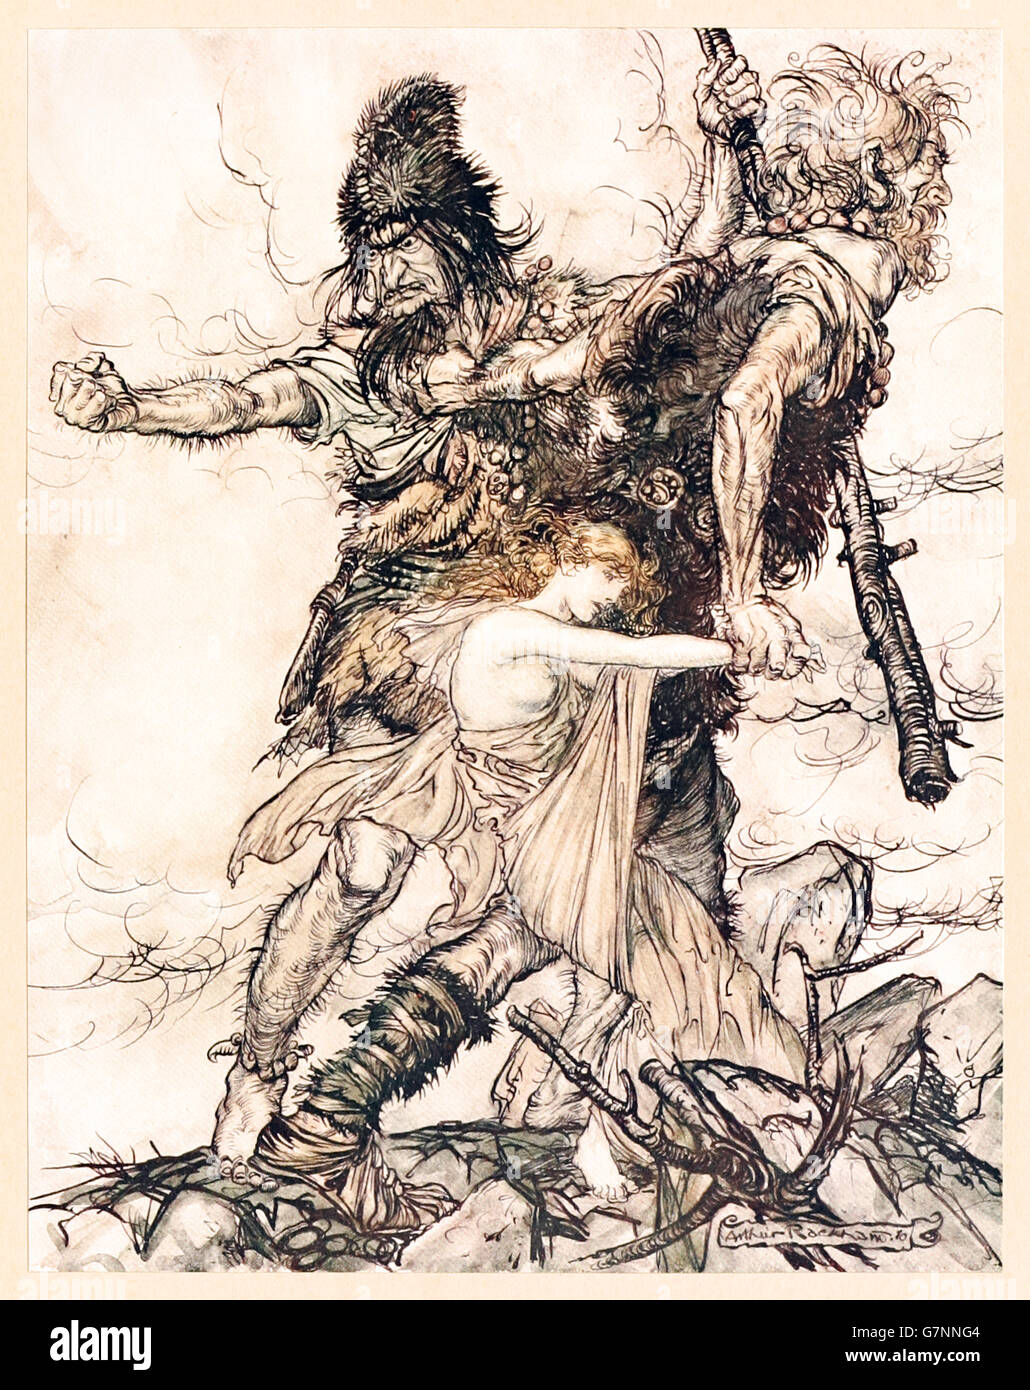 """""""Fasolt suddenly seizes Freia and drags her to one side with Fafner"""" from 'The Rhinegold & the Valkyrie' illustrated - Stock Image"""